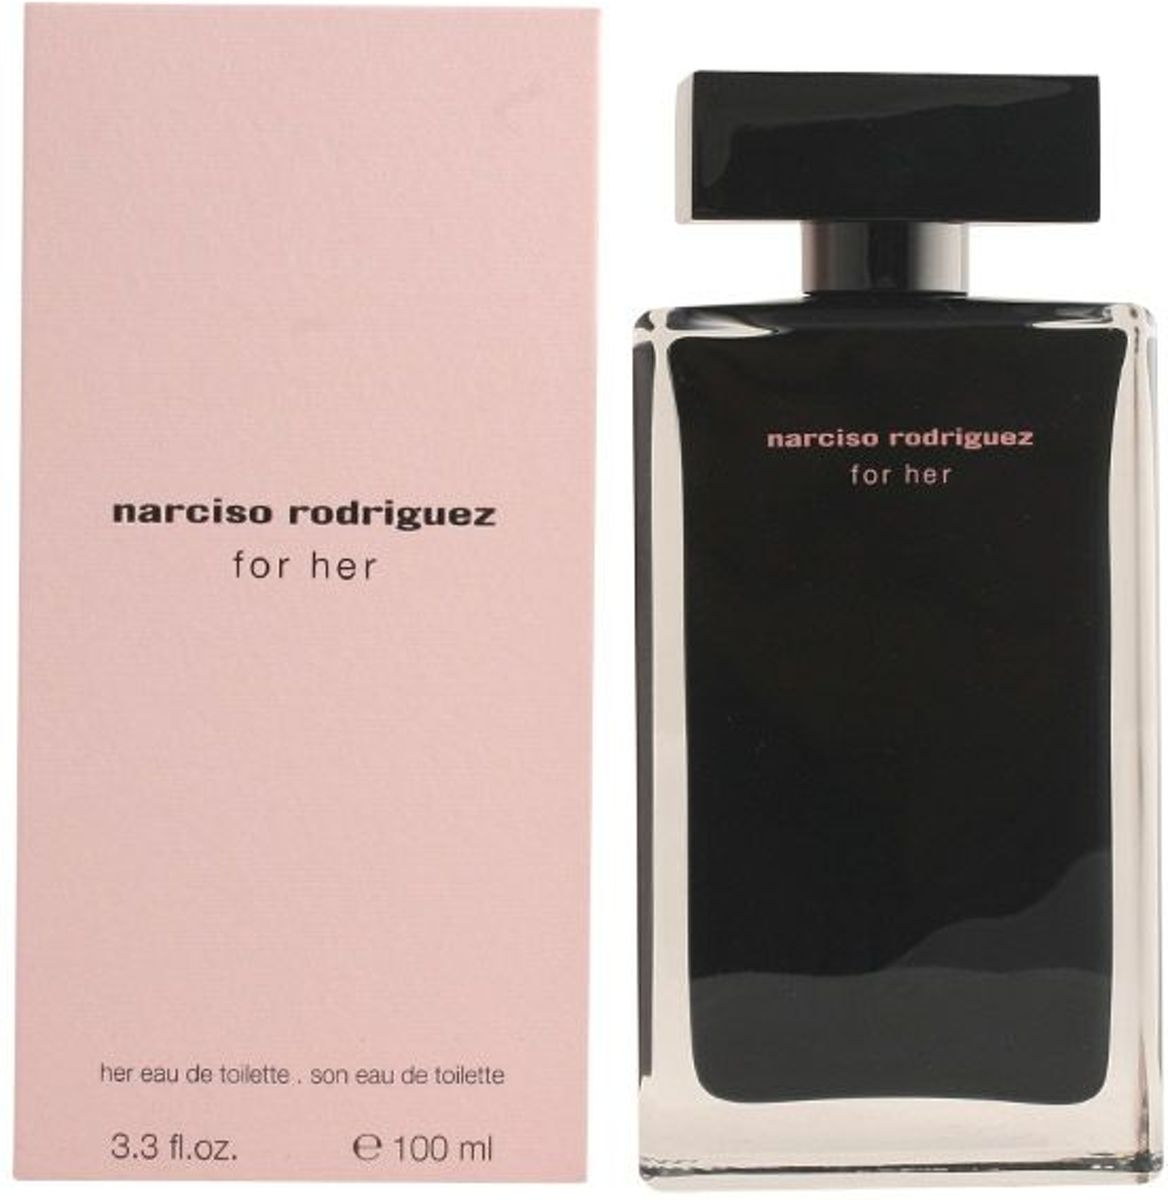 MULTI BUNDEL 2 stuks Narciso Rodriguez For Her Eau De Toilette Spray 100ml